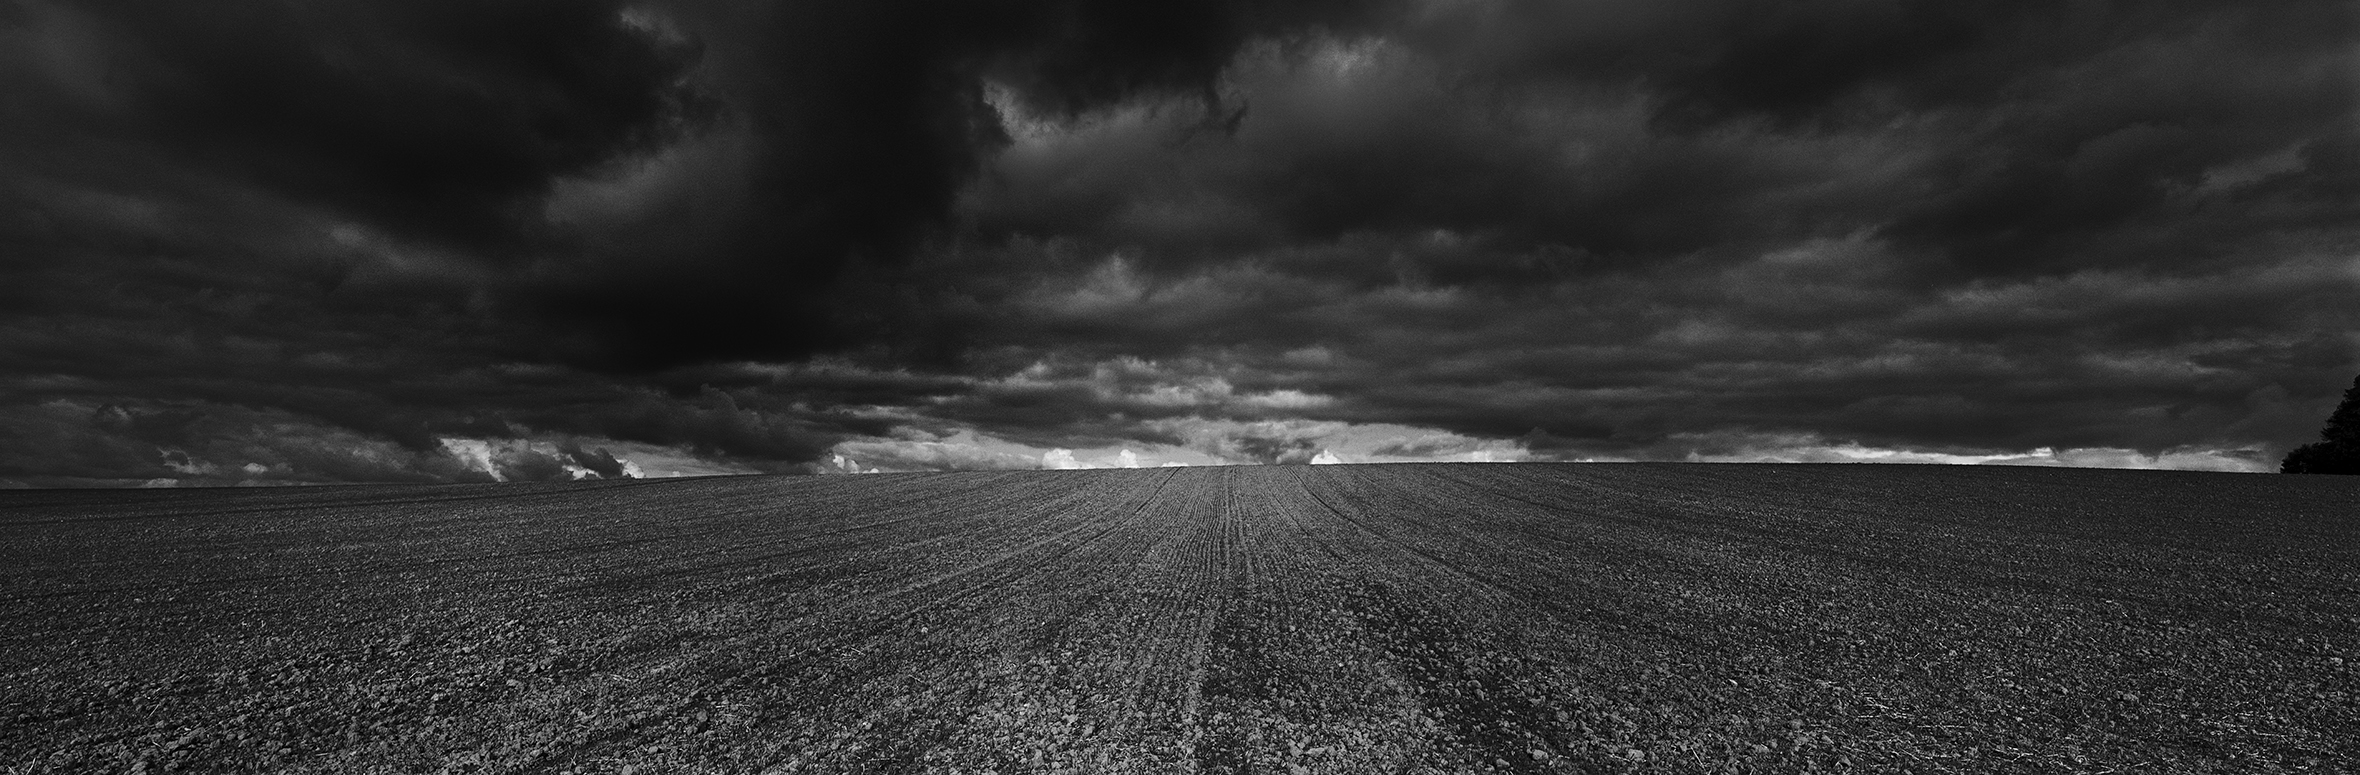 A wide-angle shot of a farm field and the vast sky full of dark clouds.